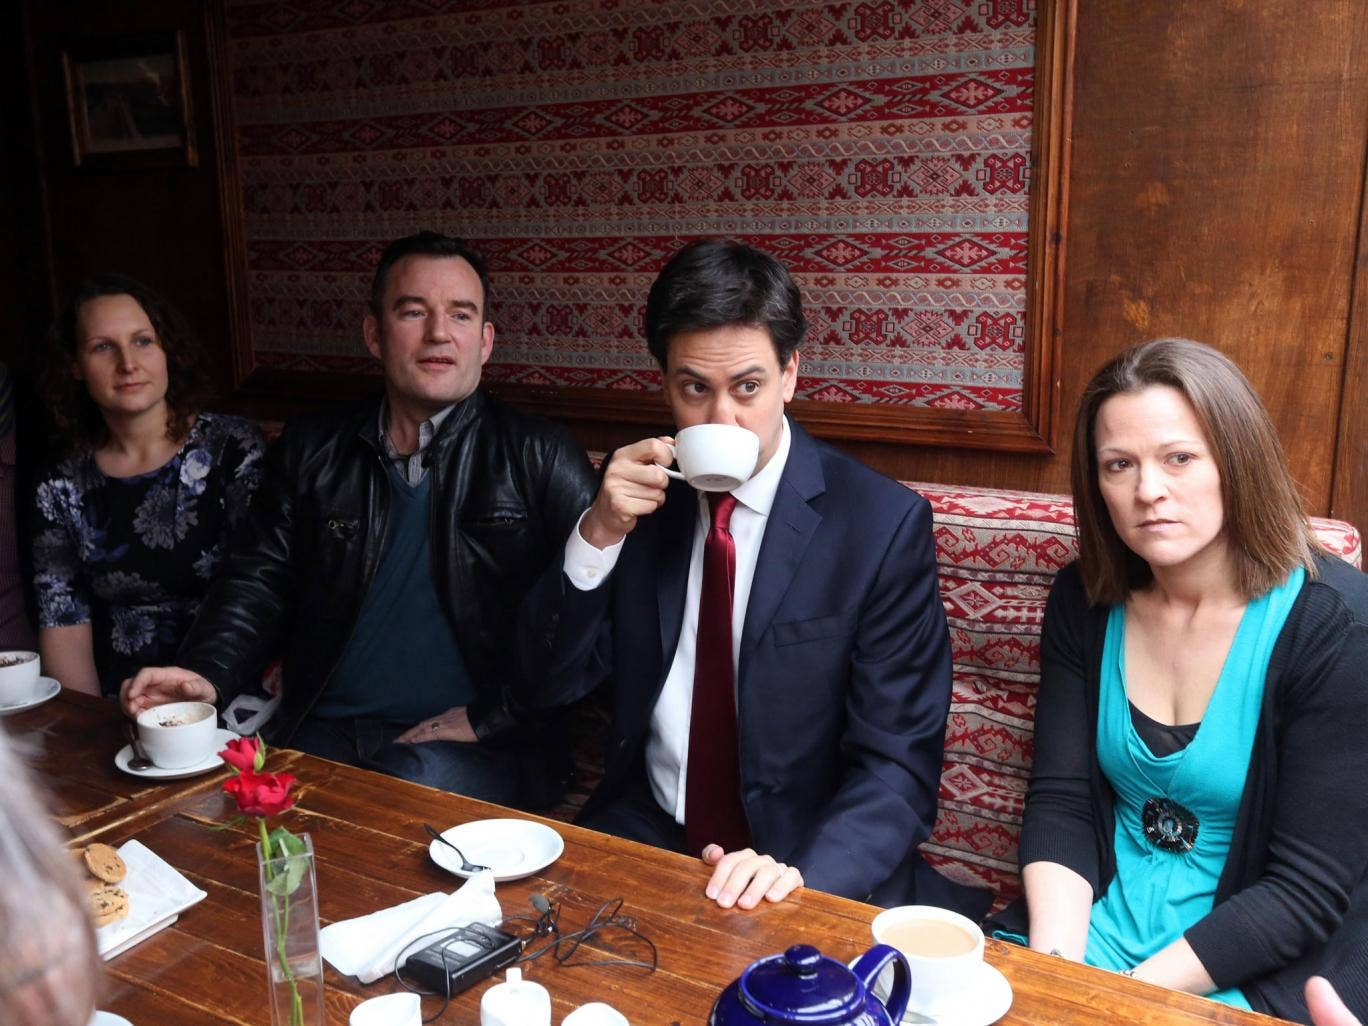 Meet the voters: Ed Miliband talks to former Liberal Democrat supporters in Eastleigh